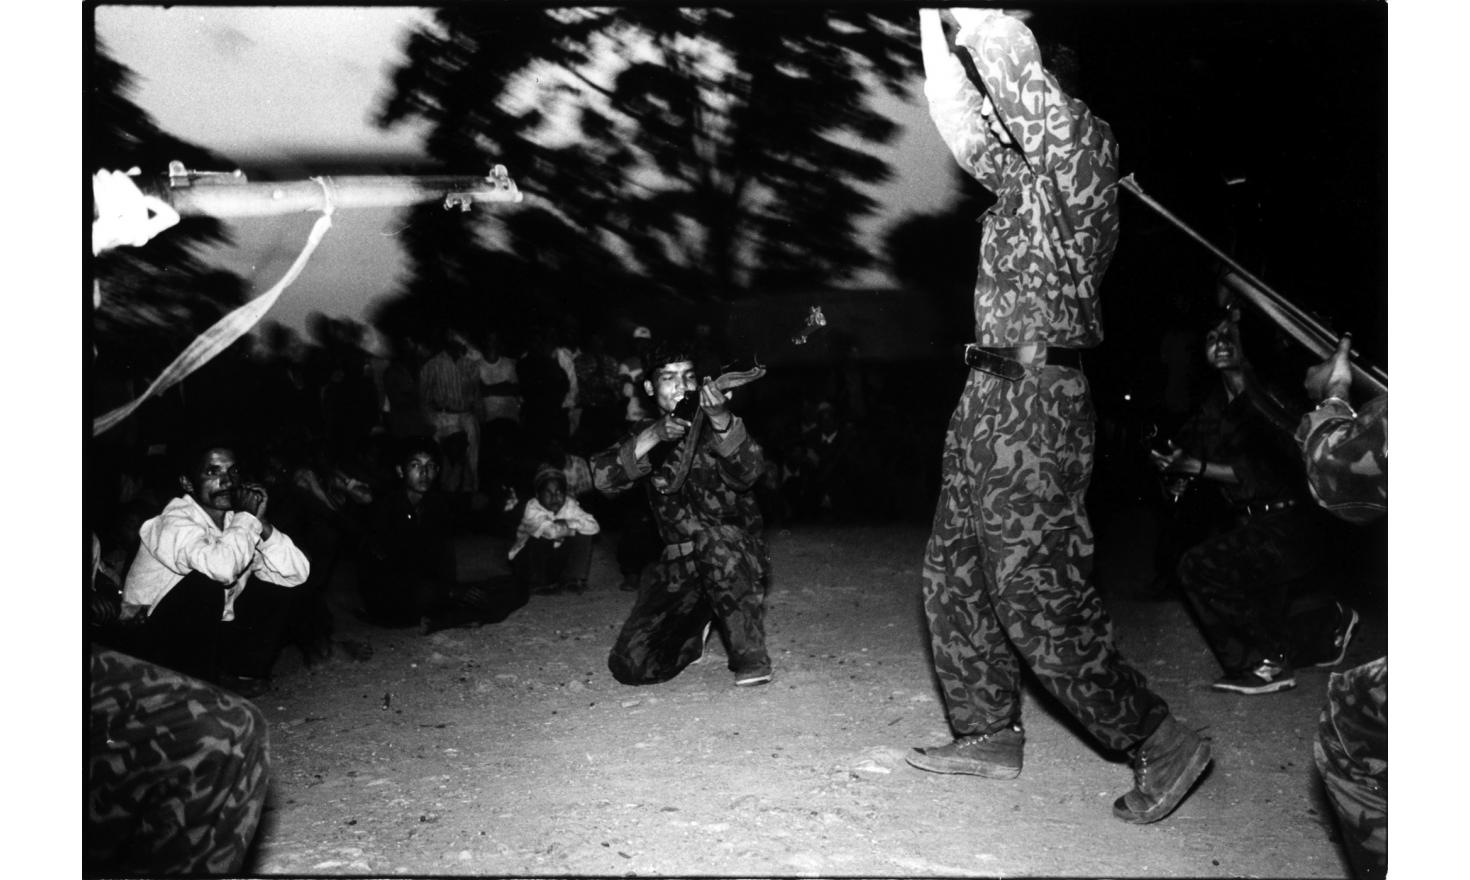 The Maoist cultural team entertains the assembly of villagers with revolutionary songs and dances in between speeches for the local Maoist government election, Malika village, 25th of may 2001